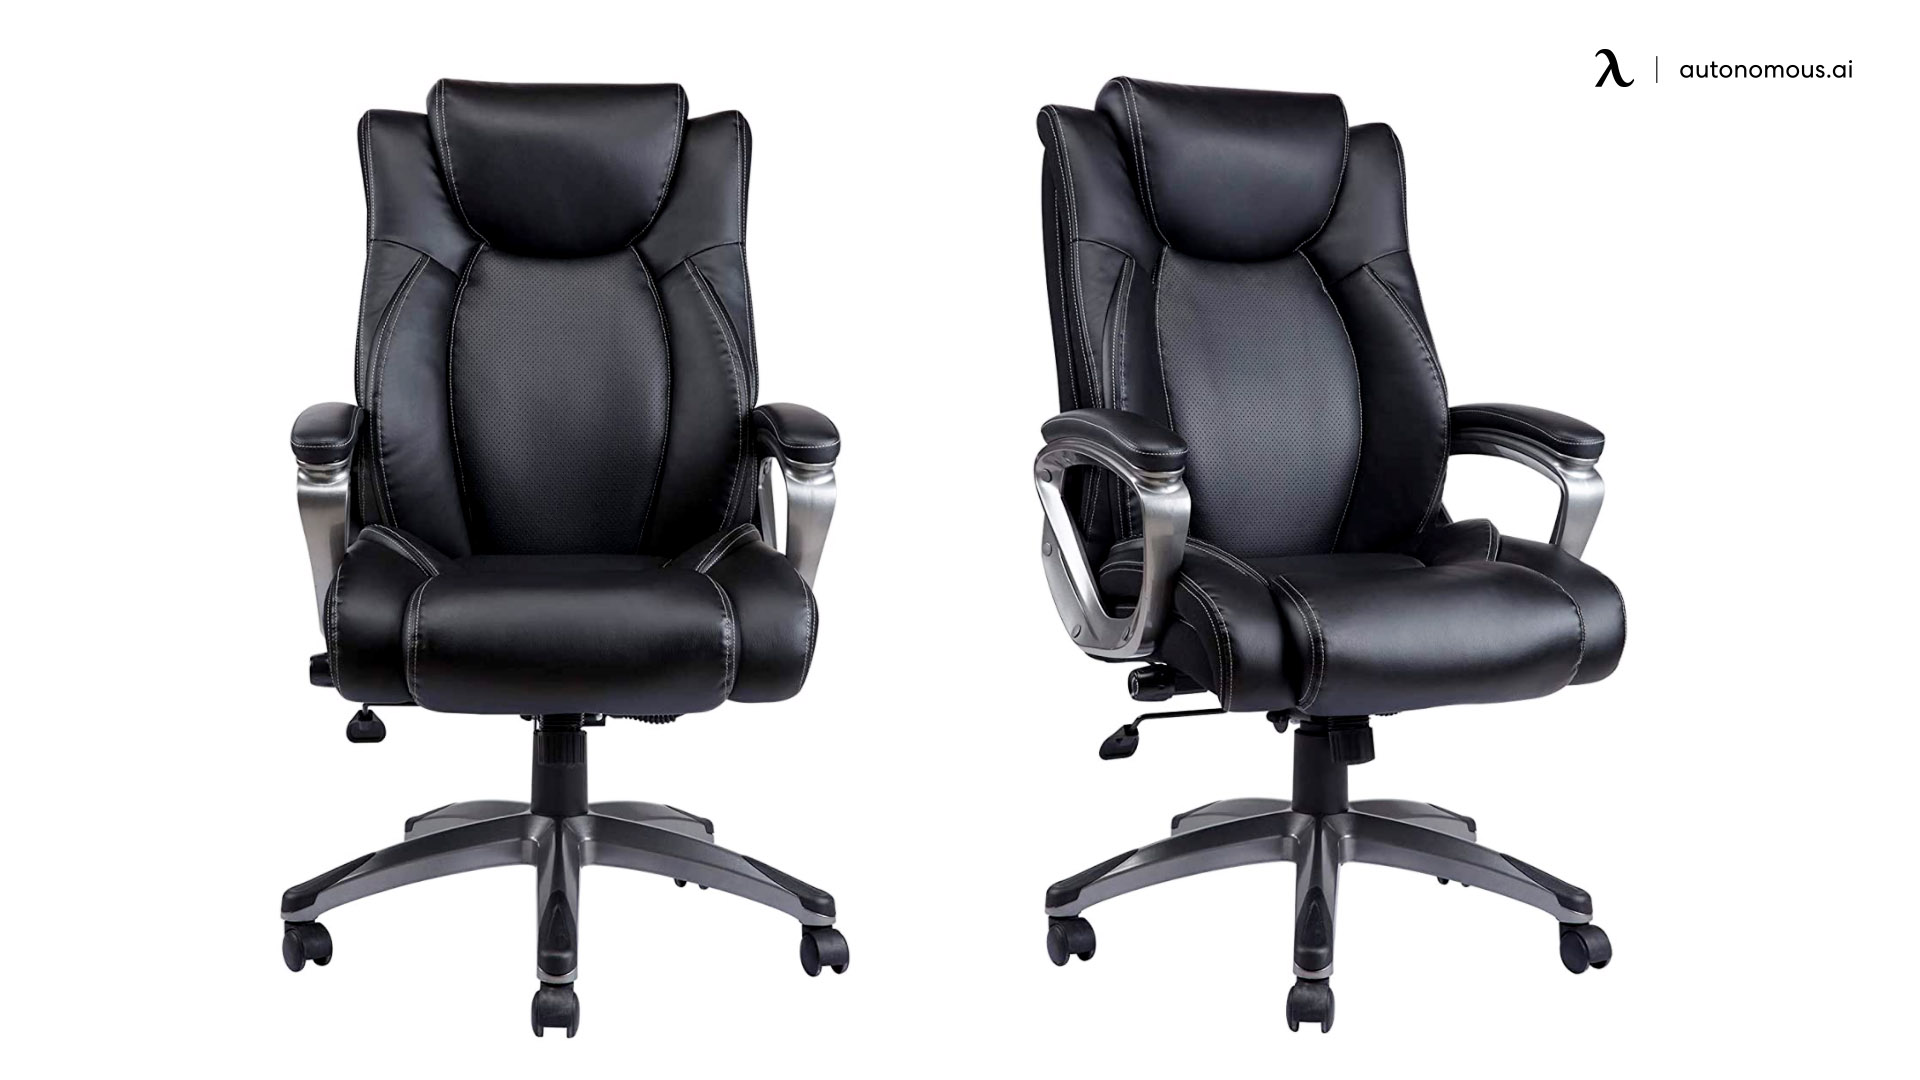 Reficcer Memory Foam Executive Office Chair